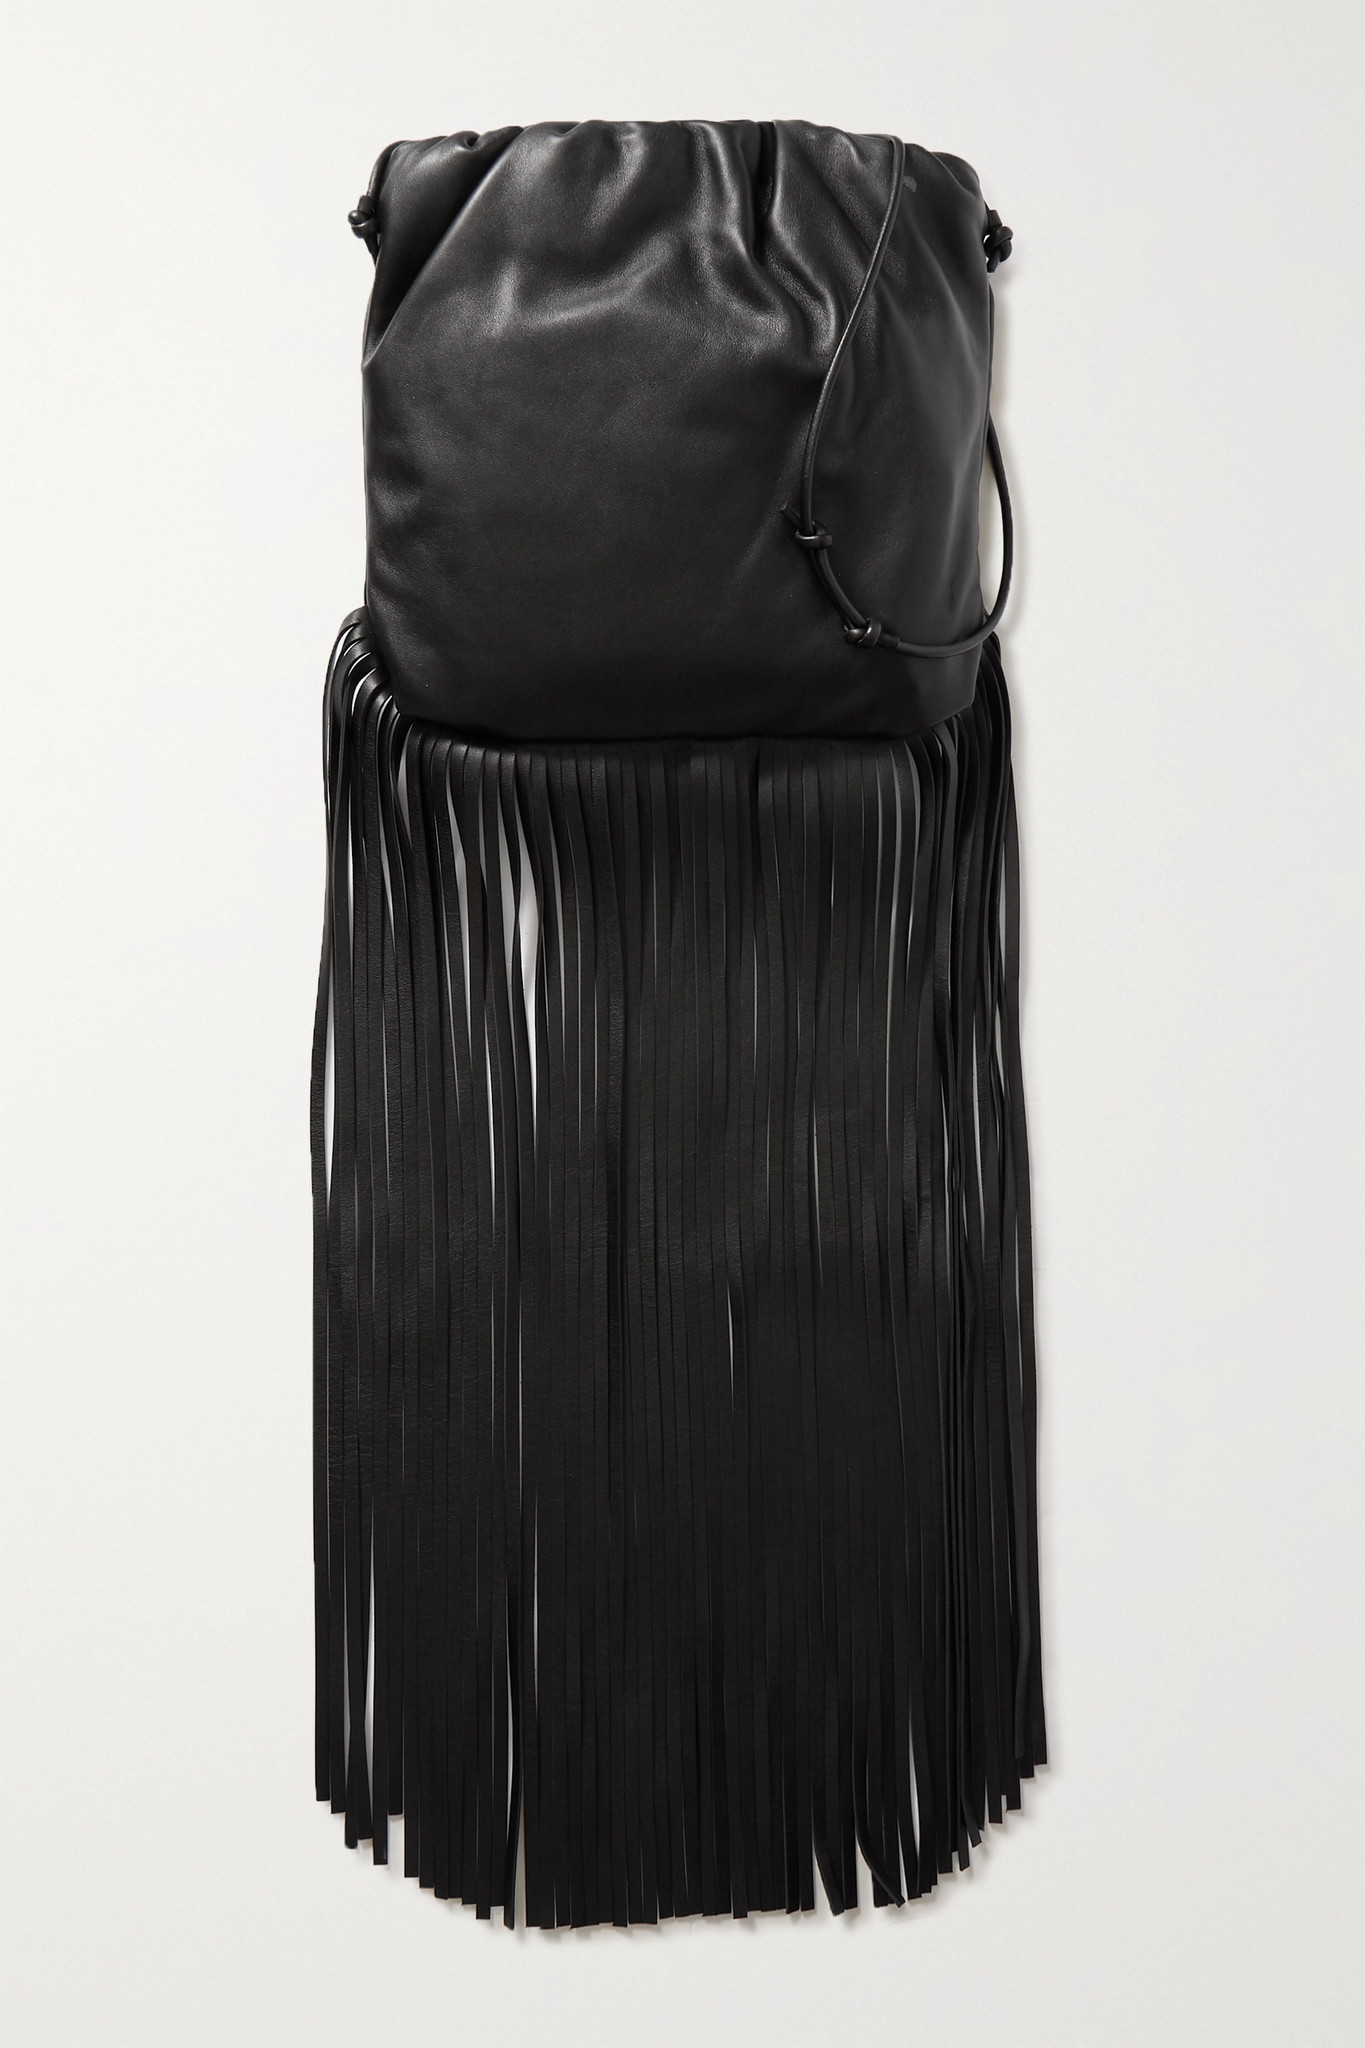 BOTTEGA VENETA - The Fringe Pouch 缩褶皮革单肩包 - 黑色 - one size